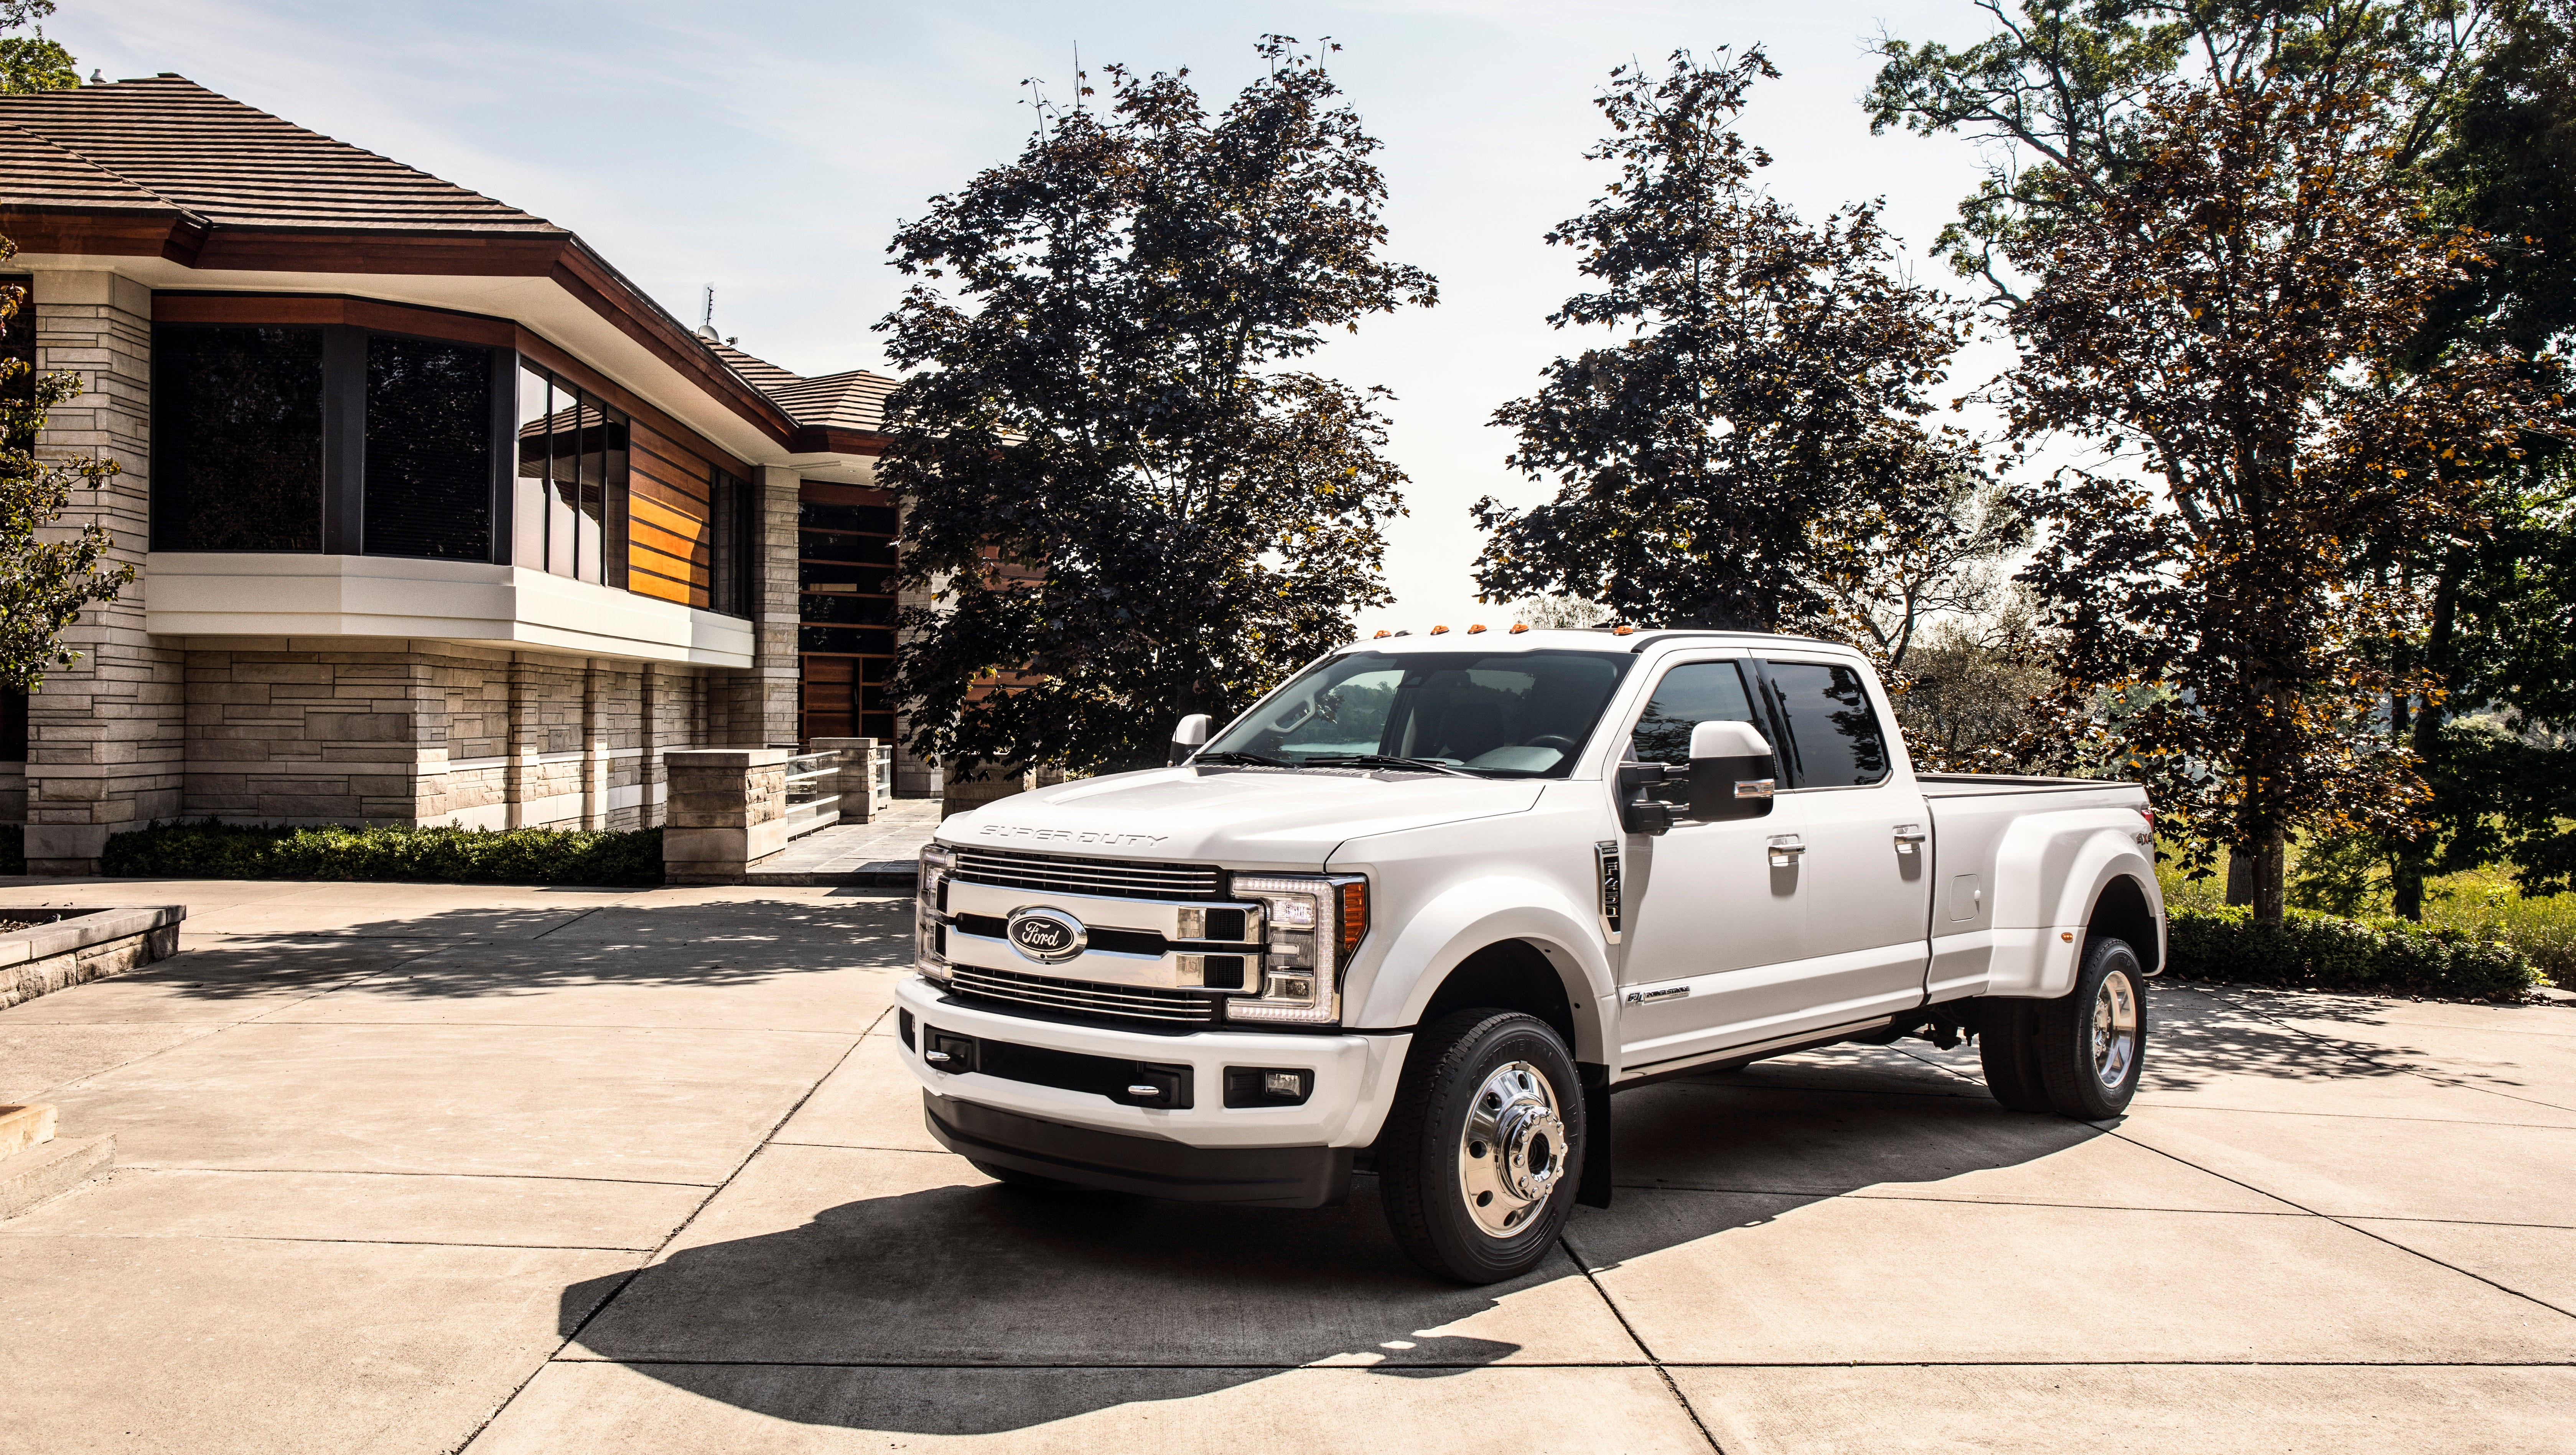 2012 Ford F850 F 850 Super Duty Series Limited Pickup Truck Tops Out 3200x1680